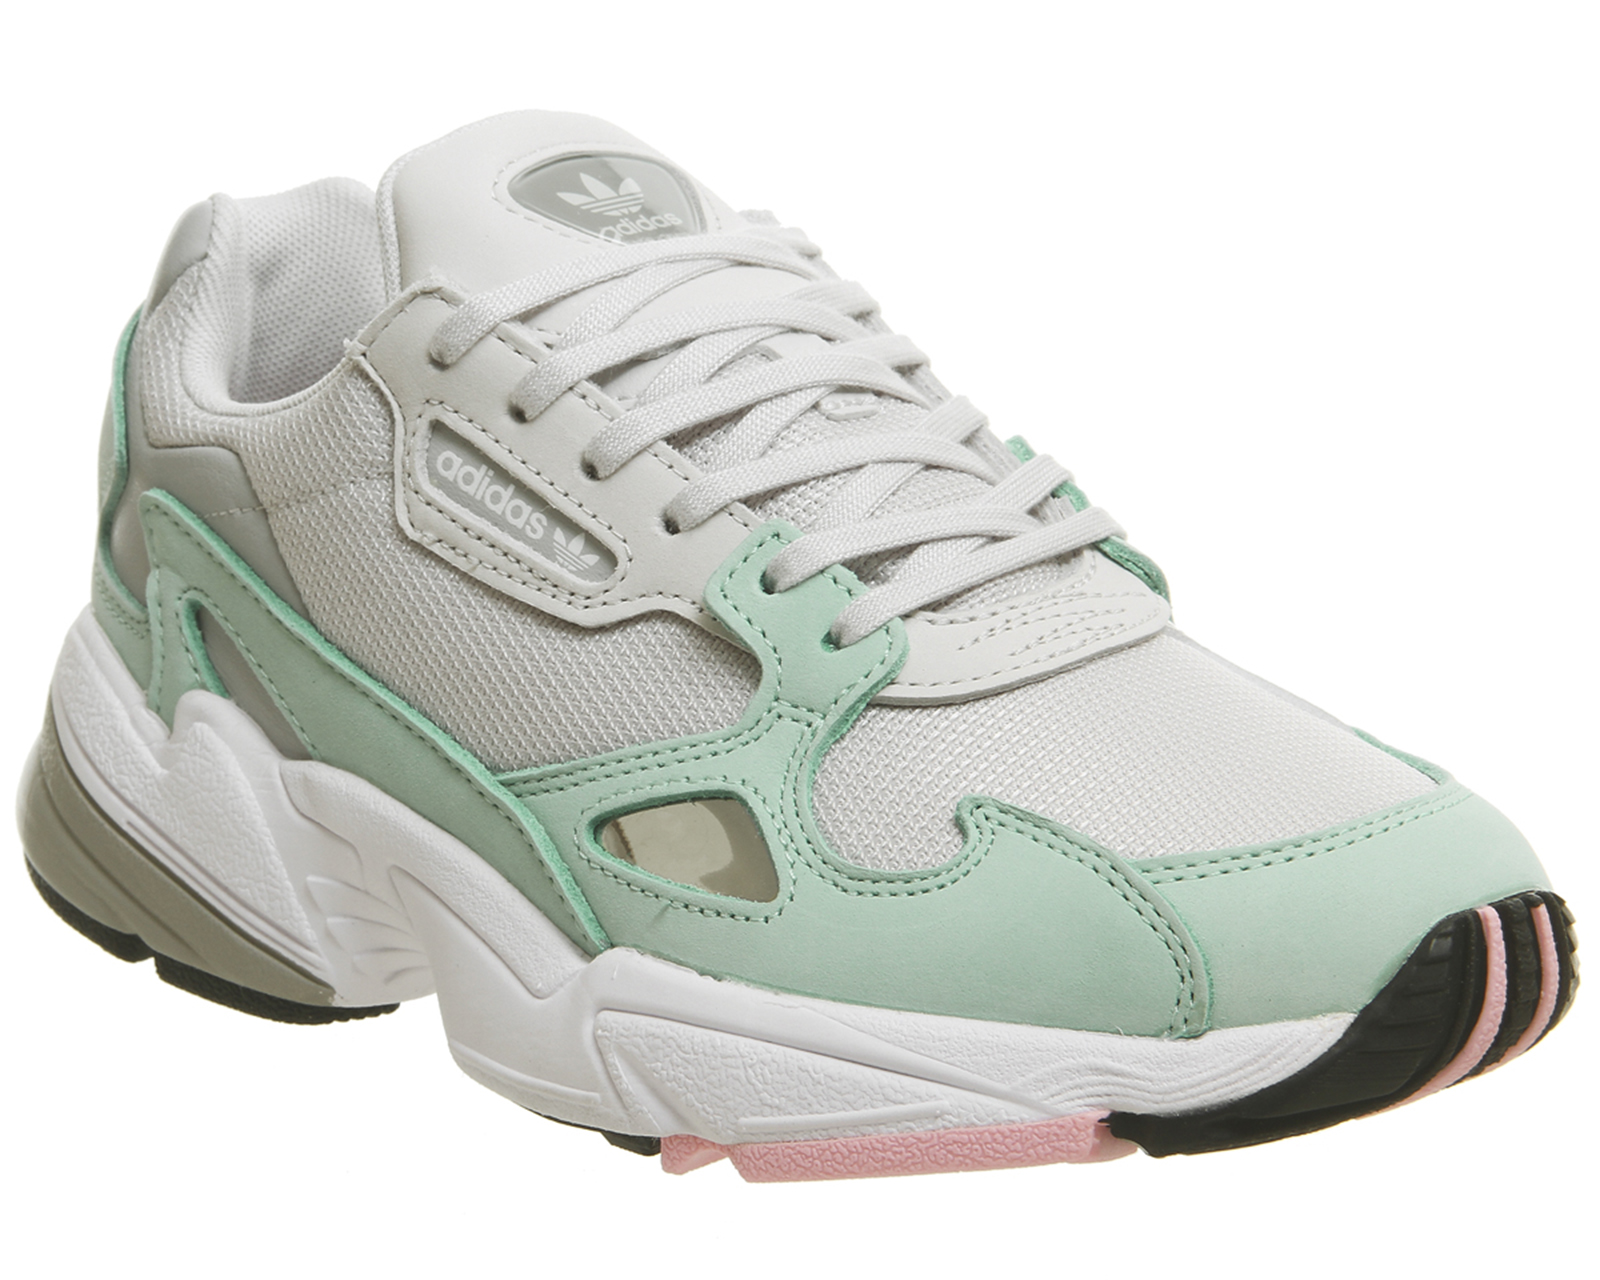 a7302db9a182 Sentinel Womens Adidas Falcon Trainers Grey One Easy Green Trainers Shoes